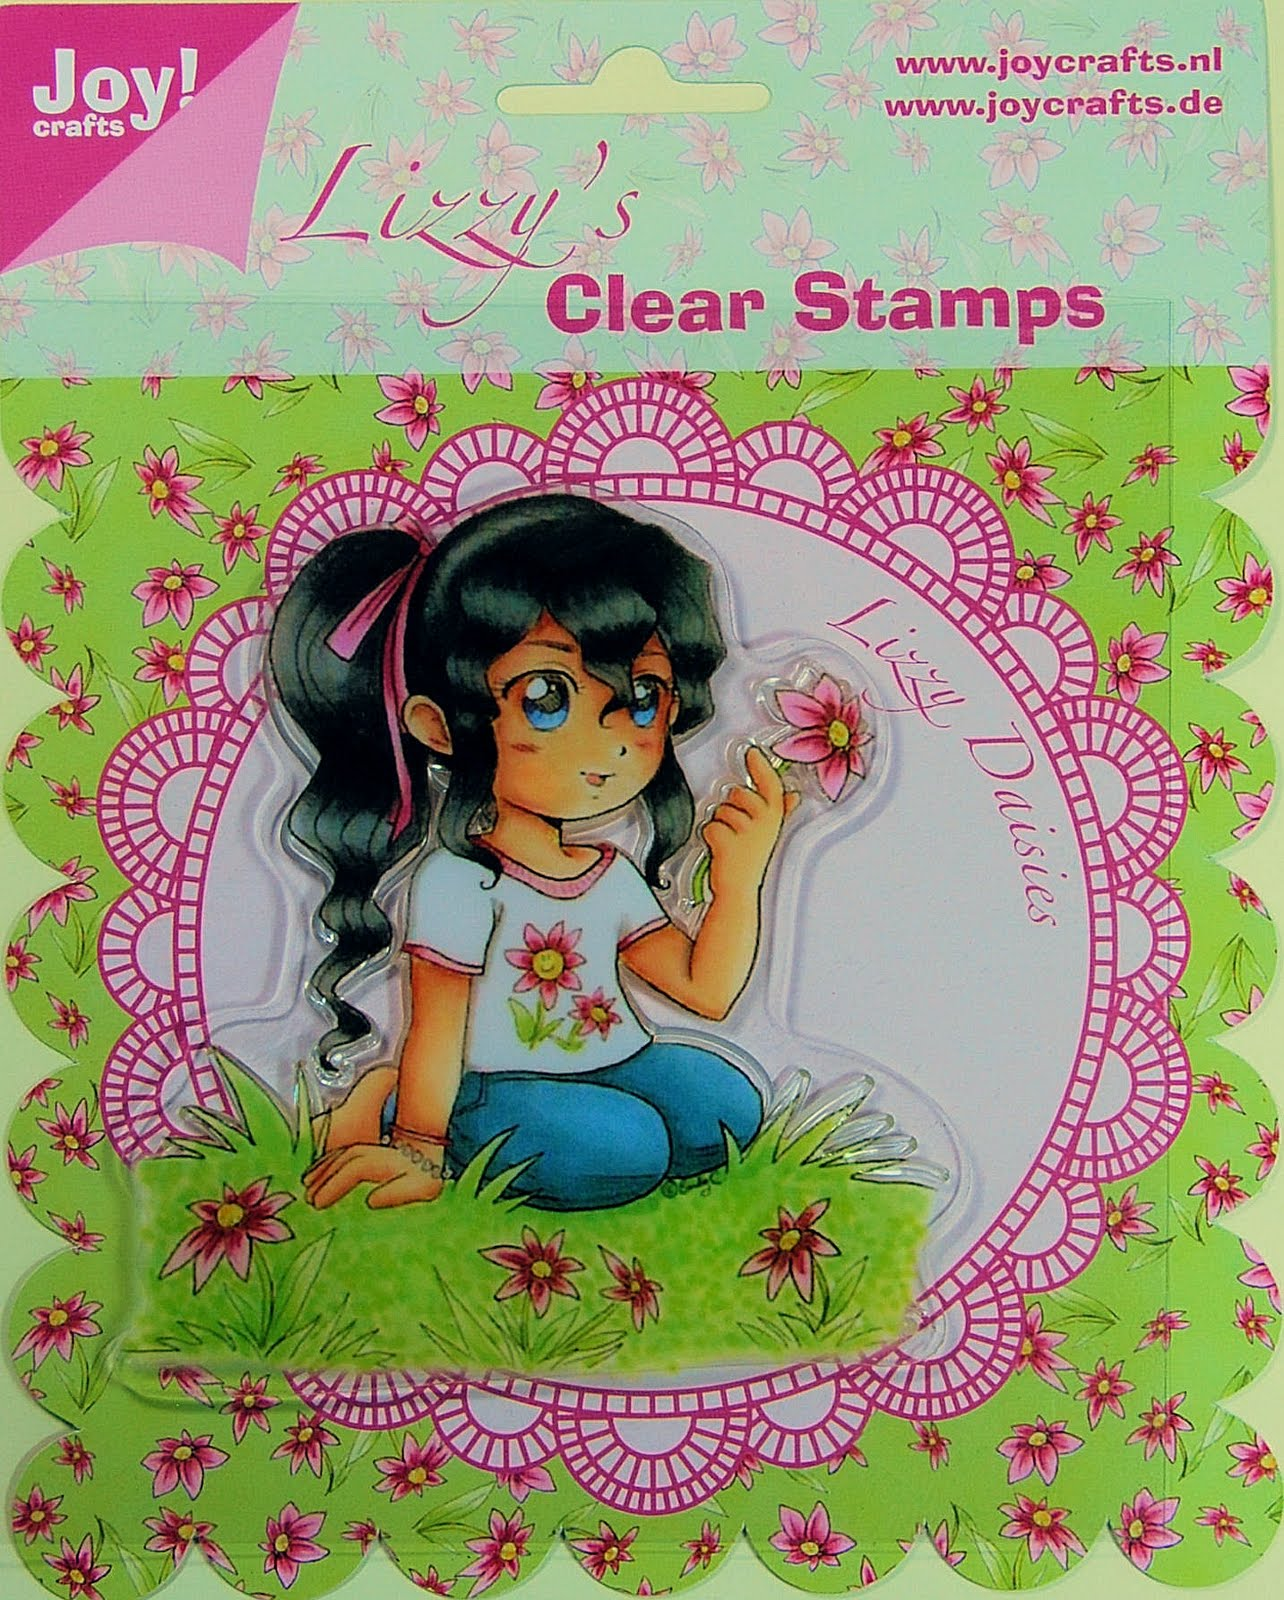 Lizzy Clear Stamps